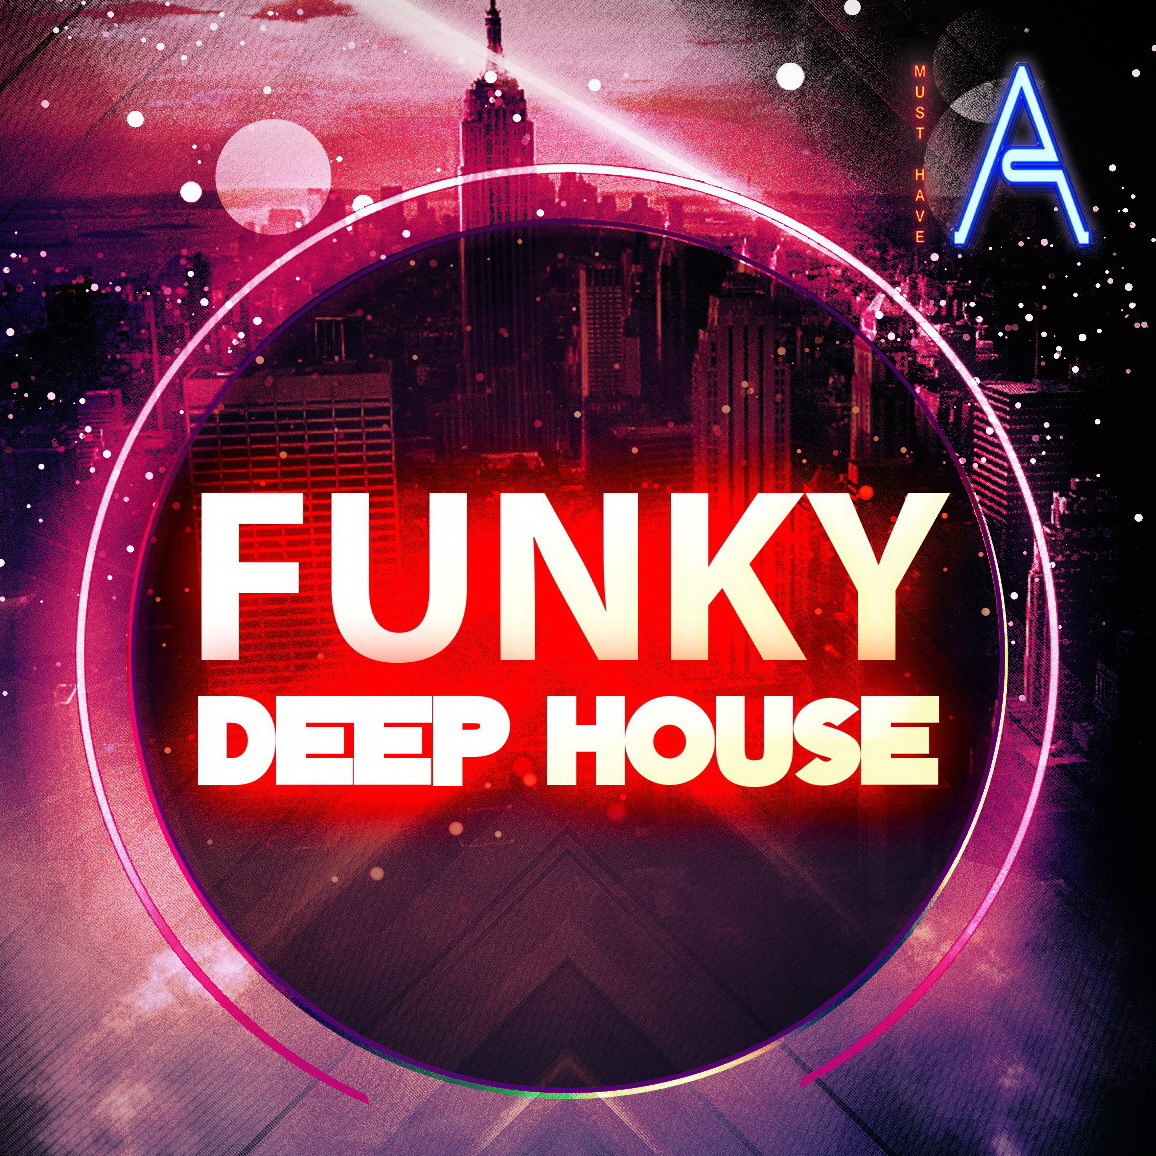 Must Have Audio Funky Deep House Fox Music Factory